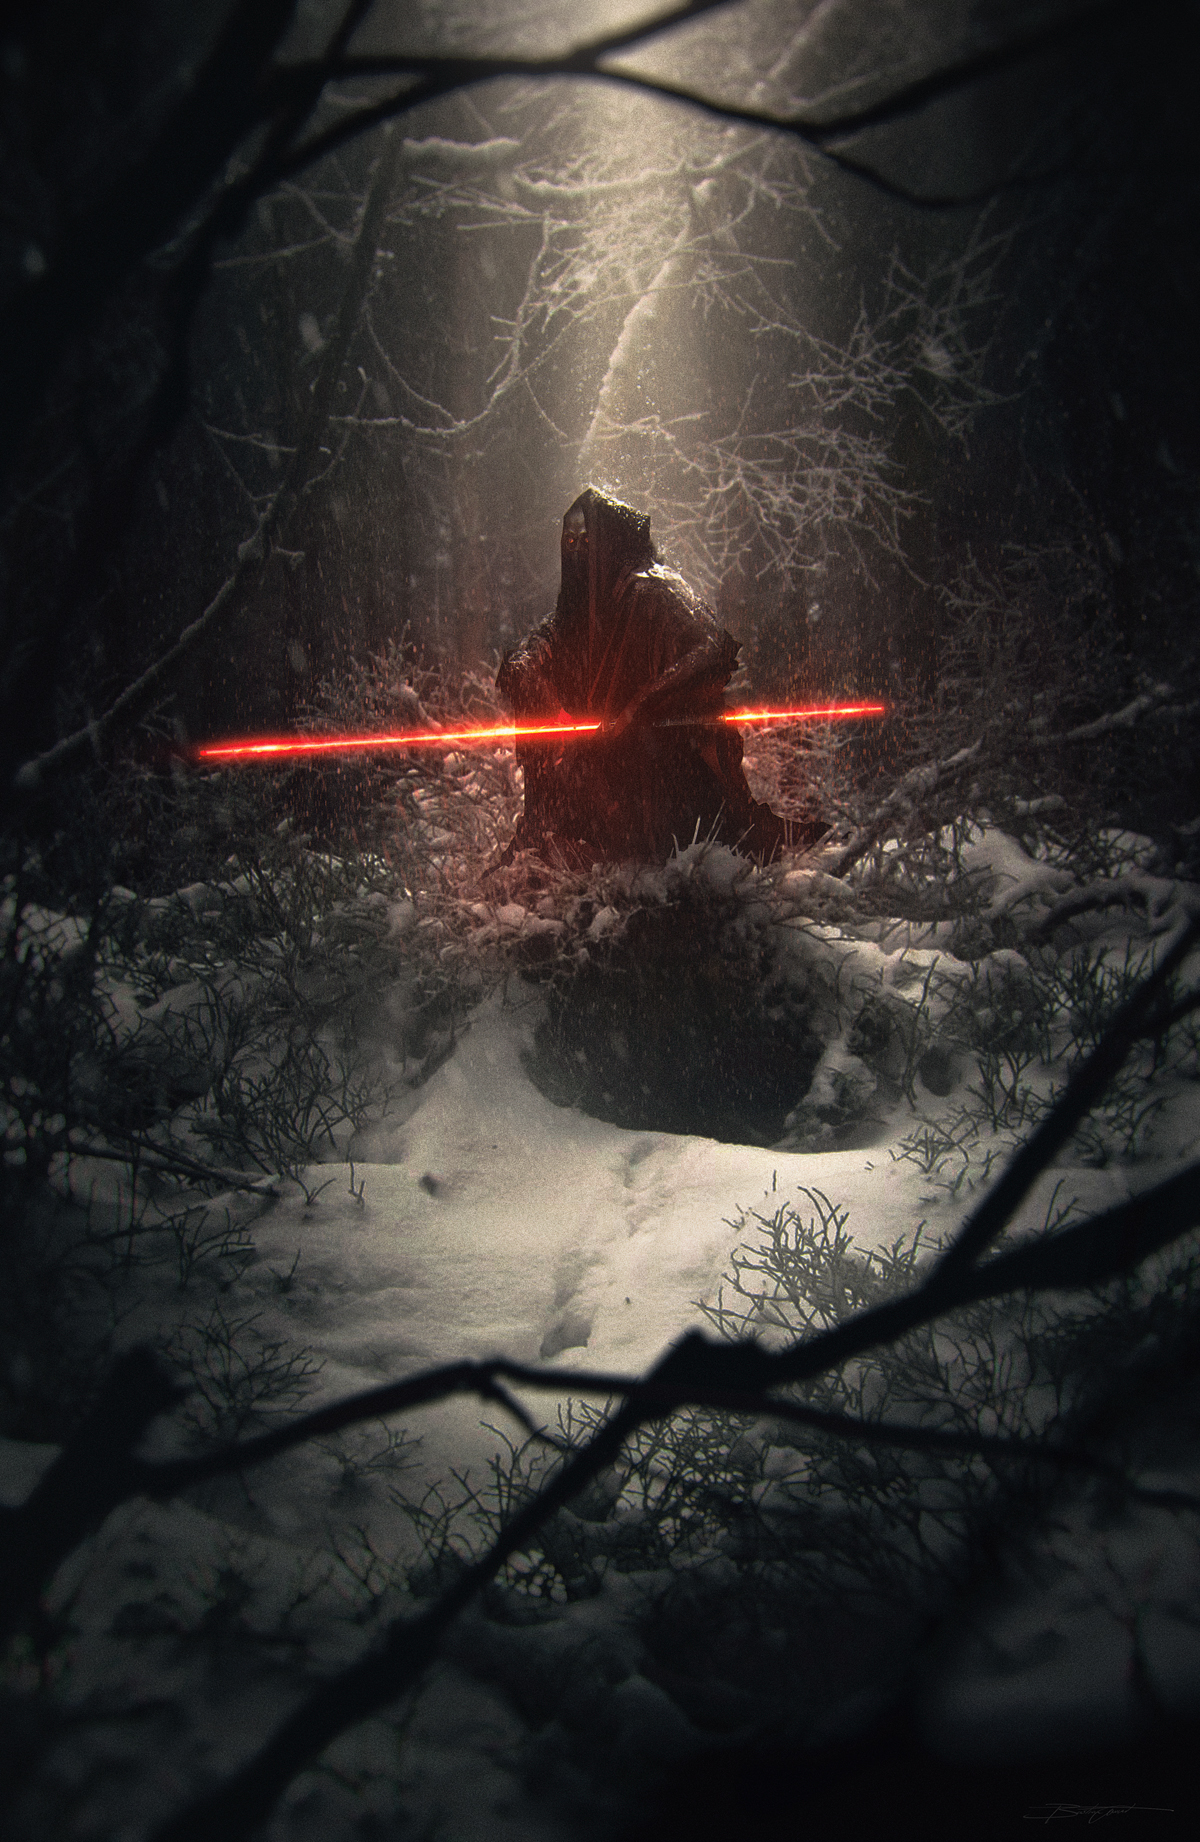 bastien_grivet_a_sith_lord_awaits